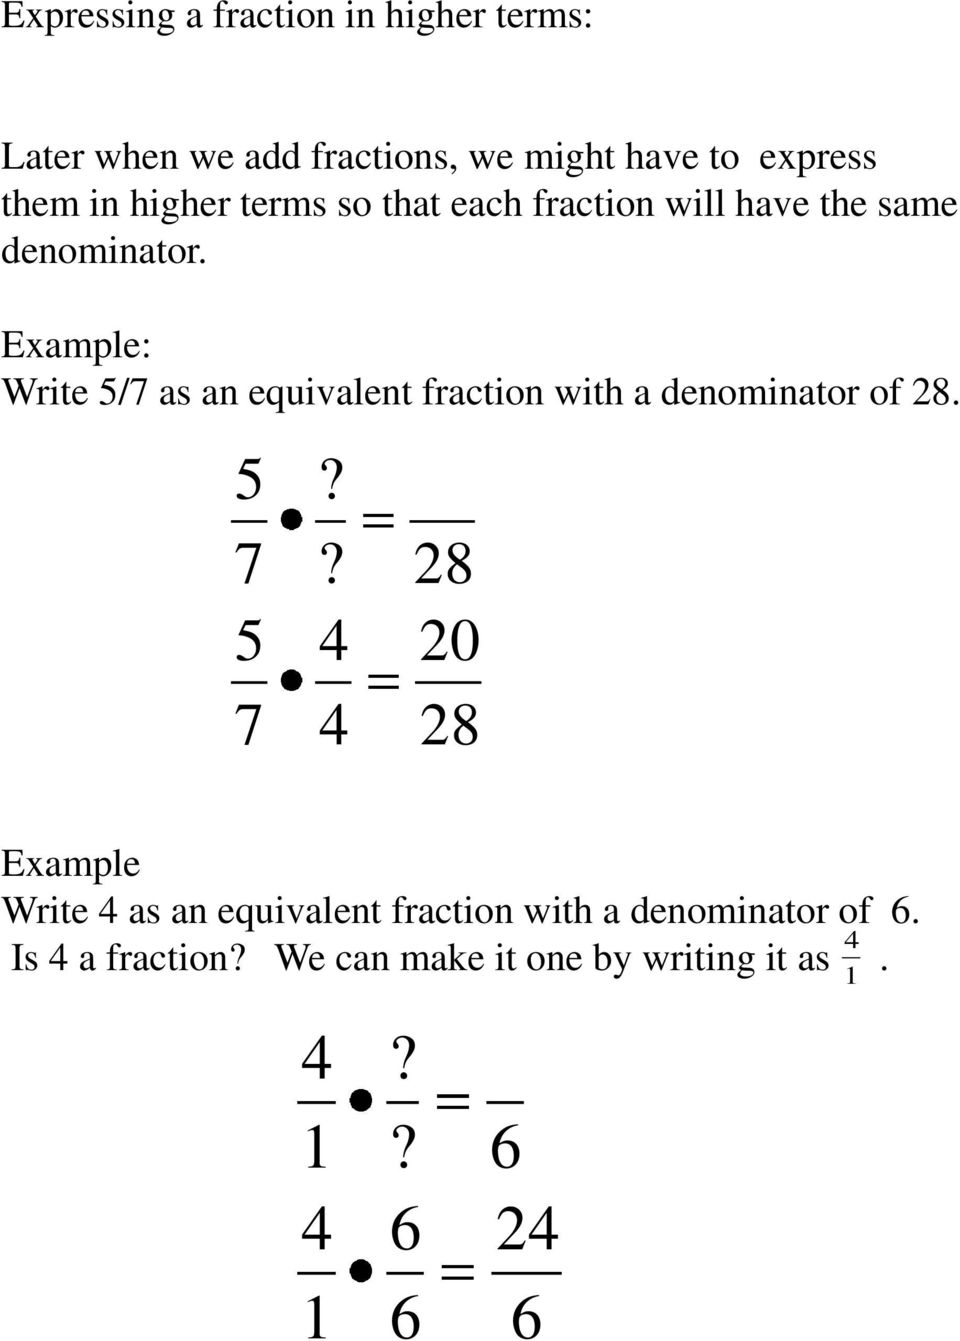 Example: Write / as an equivalent fraction with a denominator of 8.